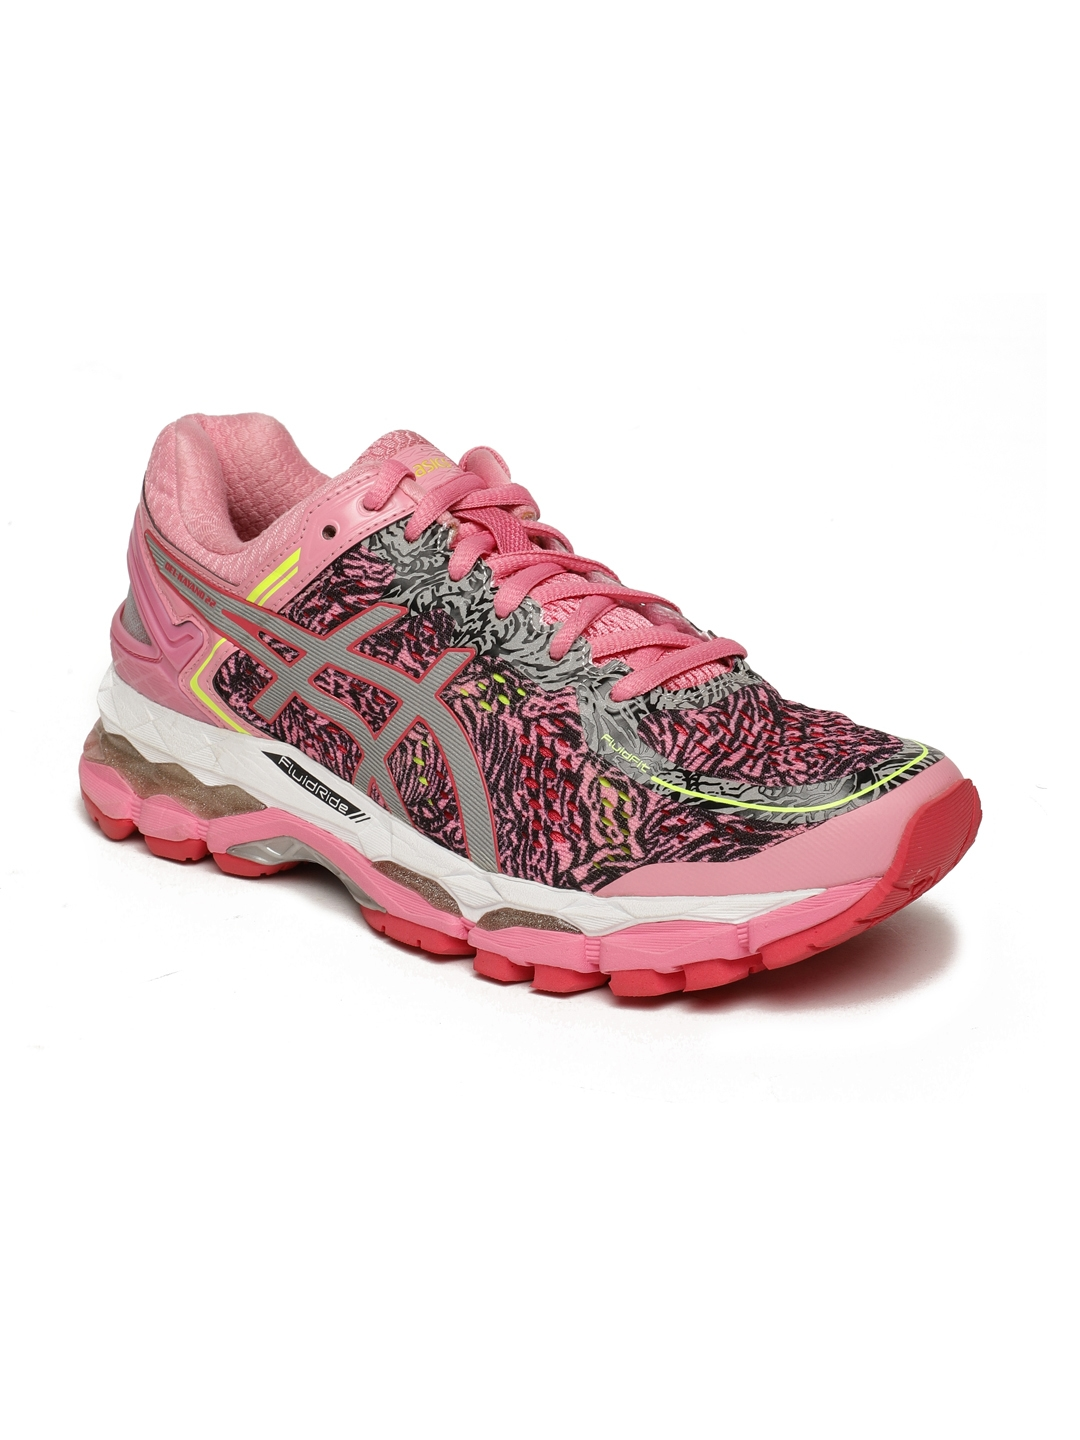 089921f5ec76cb Buy ASICS Women GEL KAYANO 22 LITE SHOW Pink Running Shoes - Sports ...